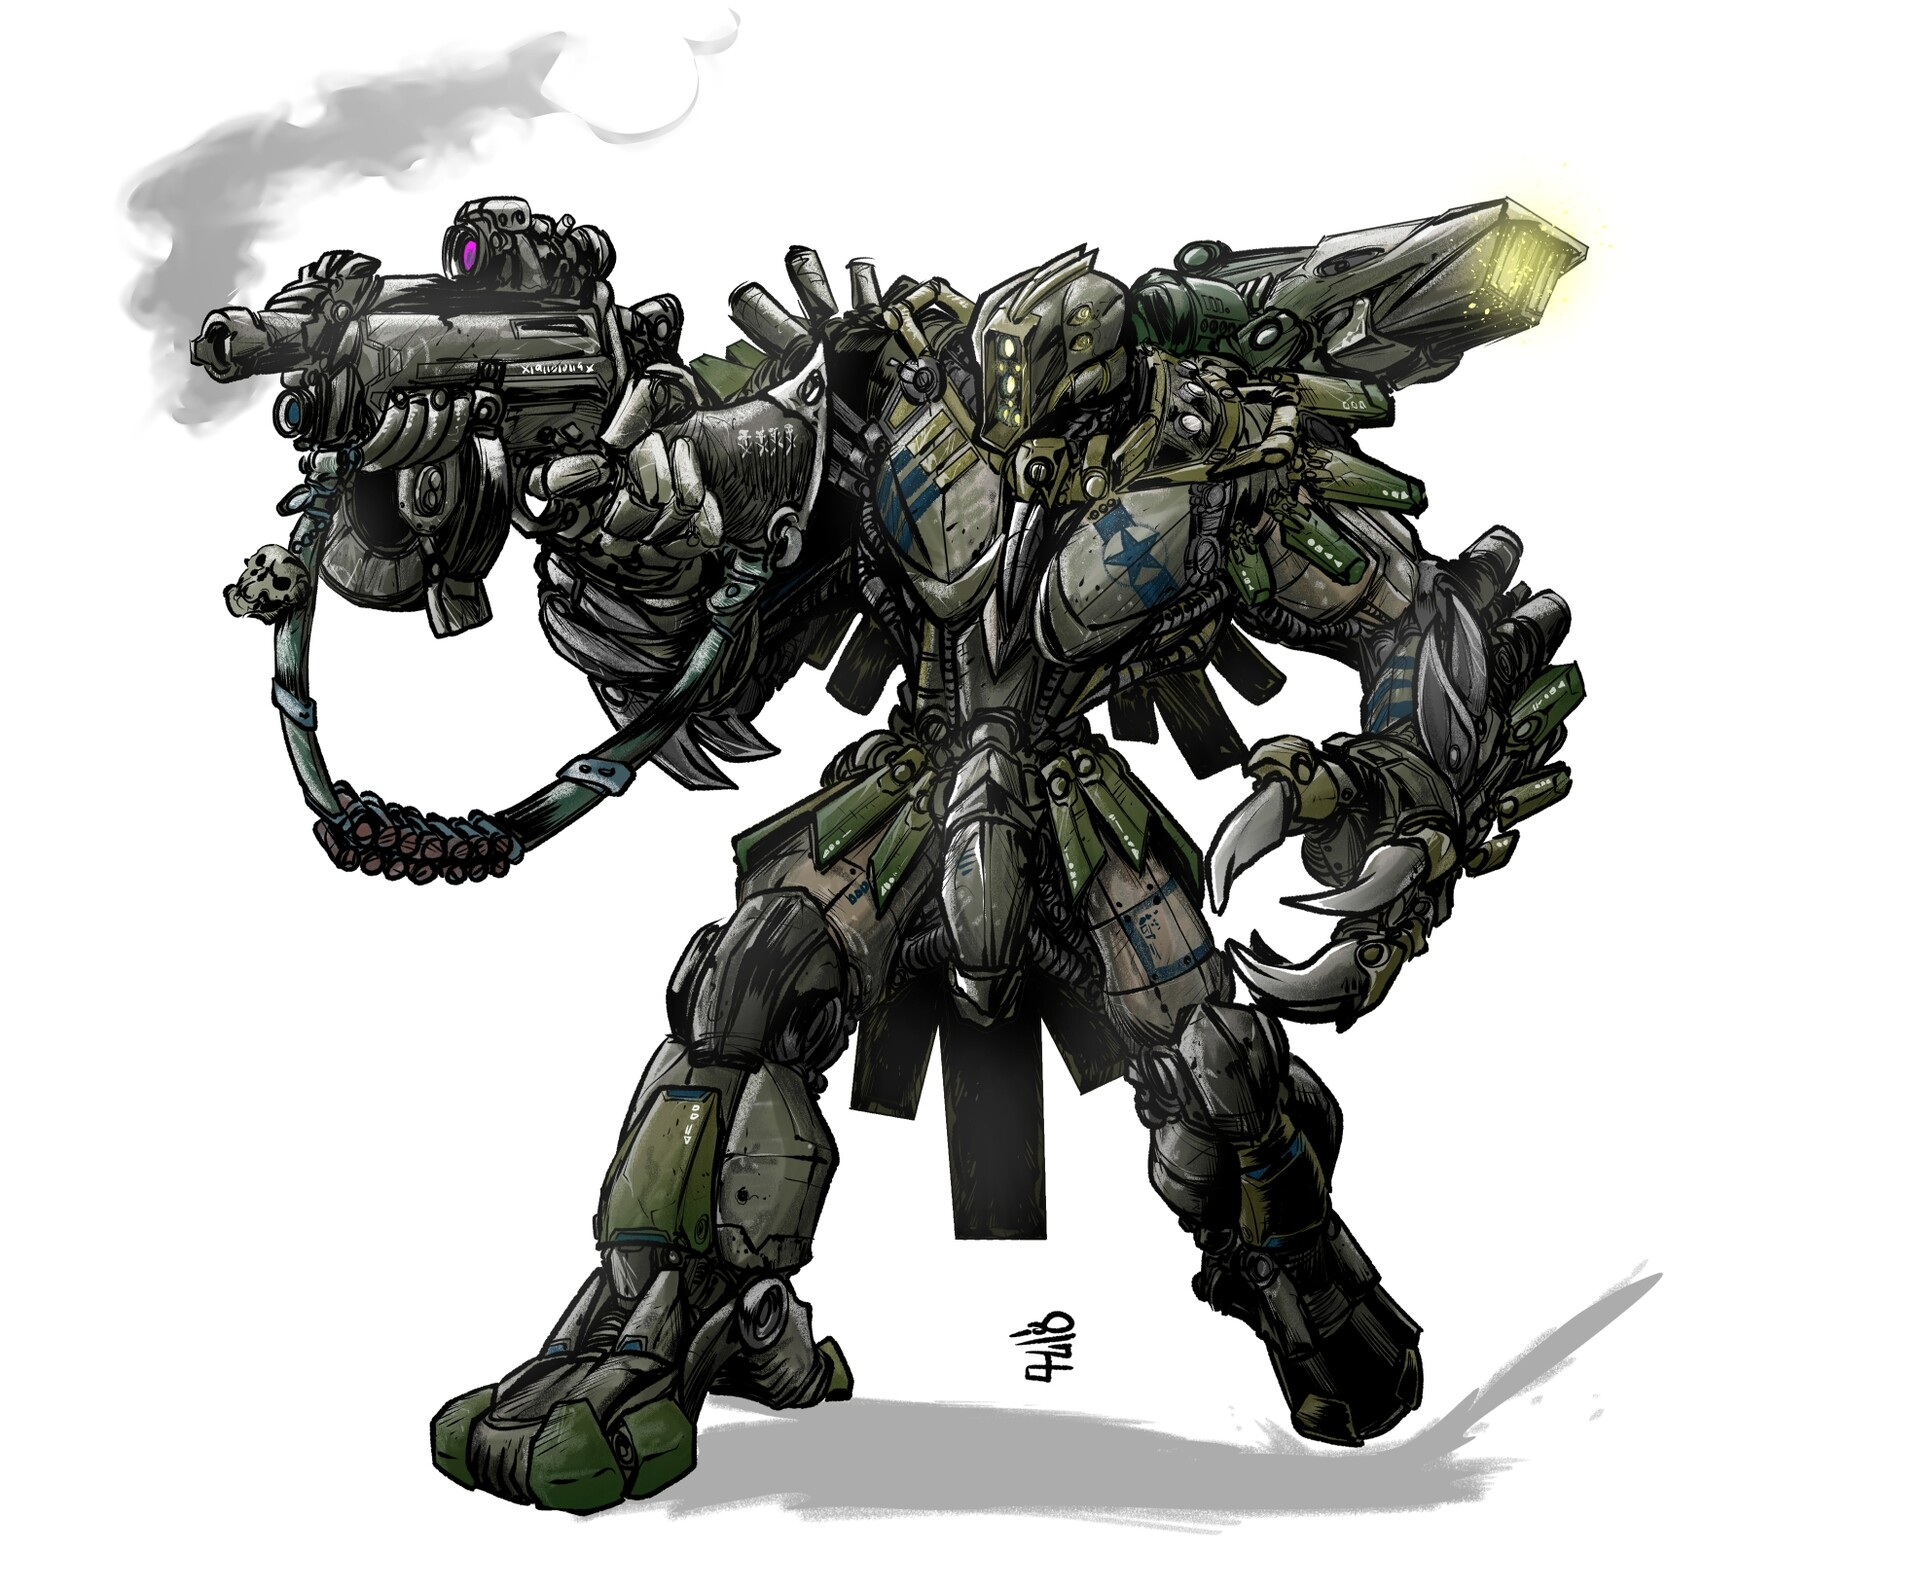 paul way cgunning mecha cqc 400dpi - Creating Veil Themed Bosses because I have nothing else better to do.